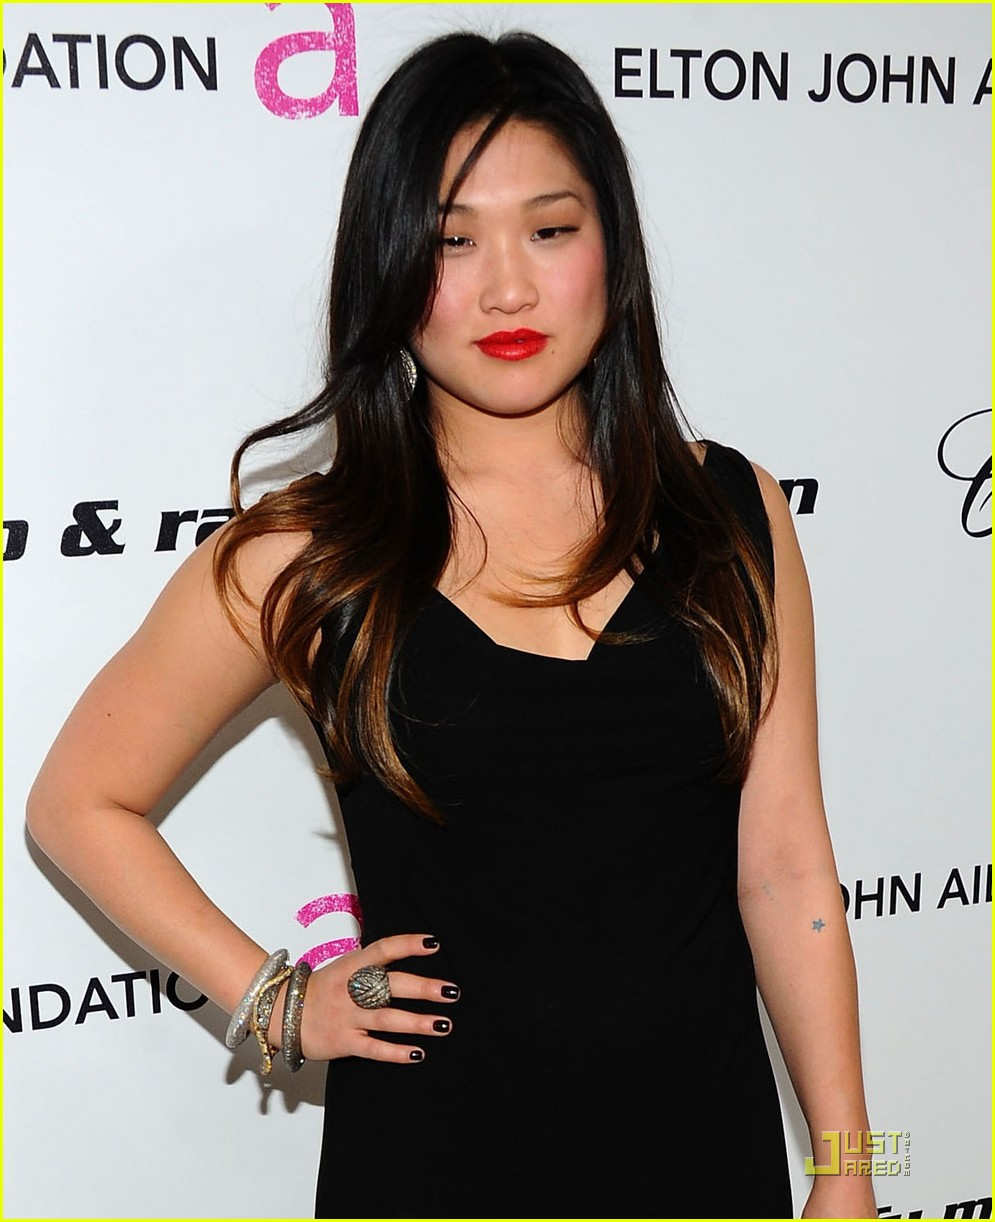 jenna ushkowitz newsjenna ushkowitz michael trevino, jenna ushkowitz instagram, jenna ushkowitz gallery, jenna ushkowitz kevin mchale, jenna ushkowitz, jenna ushkowitz twitter, jenna ushkowitz boyfriend, jenna ushkowitz mulan, jenna ushkowitz dating, jenna ushkowitz tumblr, jenna ushkowitz boyfriend list, jenna ushkowitz glee, jenna ushkowitz 2015, jenna ushkowitz news, jenna ushkowitz wdw, jenna ushkowitz tattoo, jenna ushkowitz spring awakening, jenna ushkowitz fansite, jenna ushkowitz and harry shum jr, jenna ushkowitz and chord overstreet